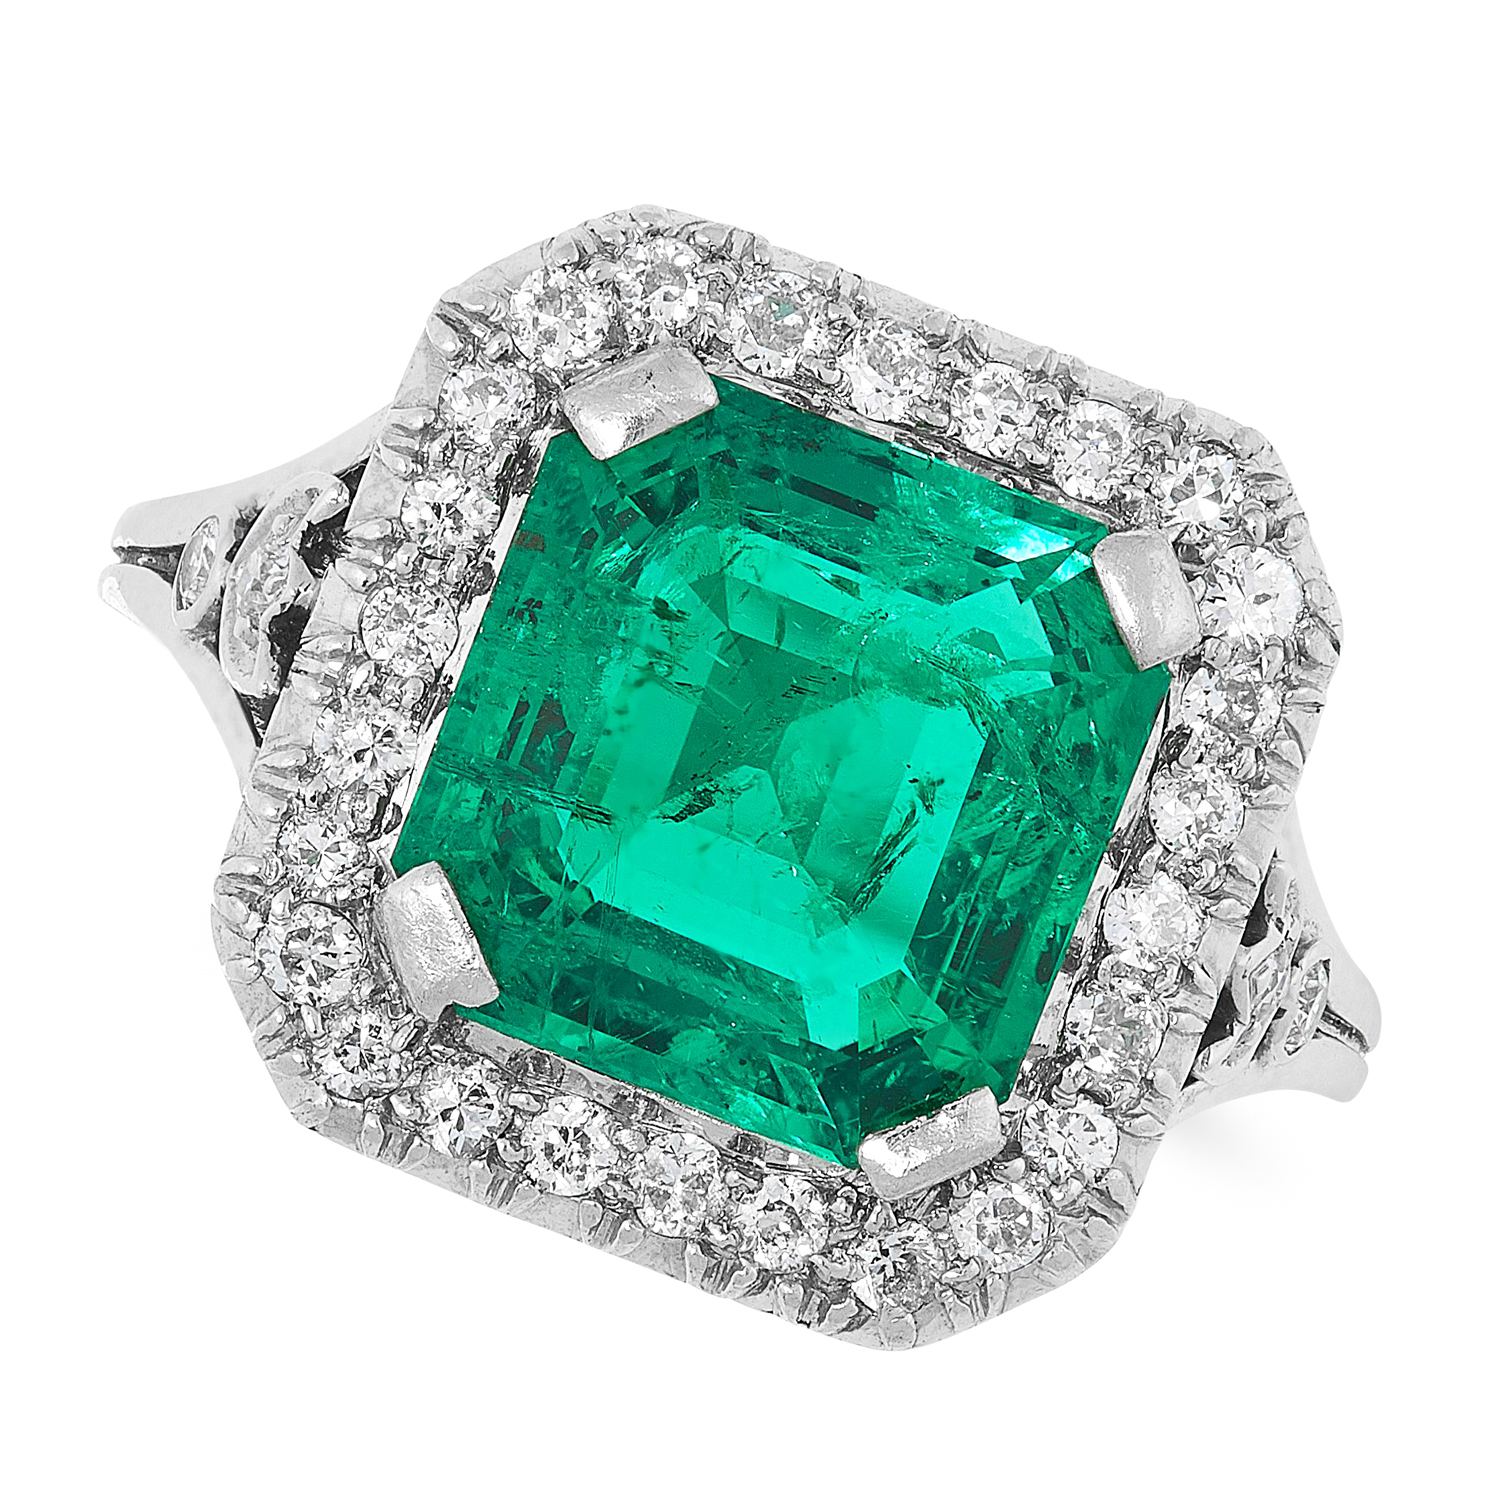 A COLOMBIAN EMERALD AND DIAMOND CLUSTER RING set with an emerald cut emerald of 2.84 carats in a